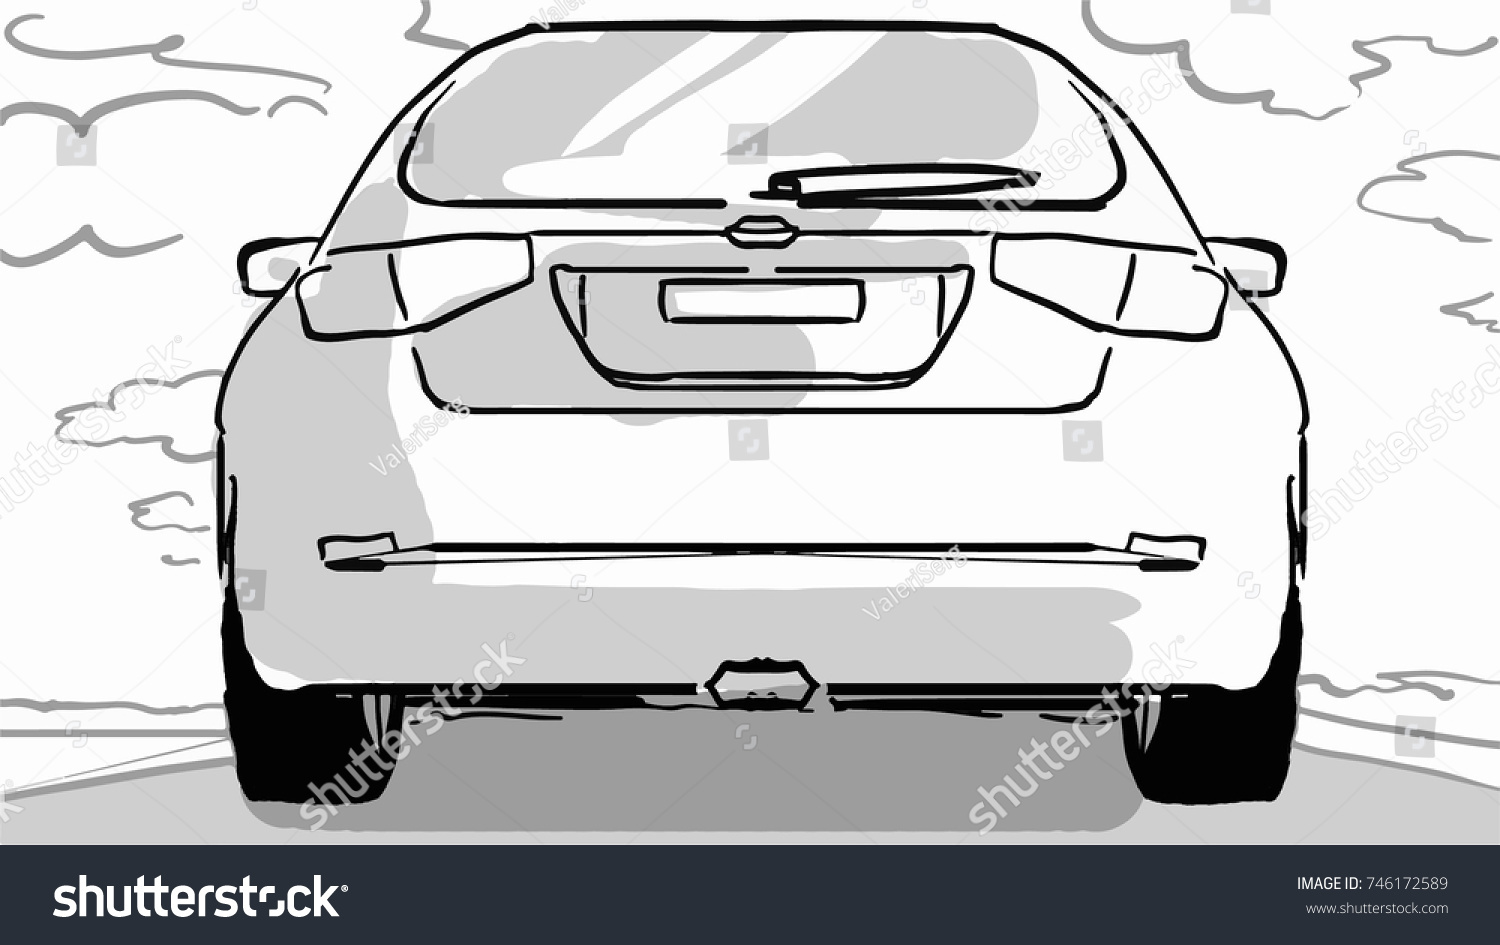 Car On Road Black White Vector Stock Vector 746172589 - Shutterstock